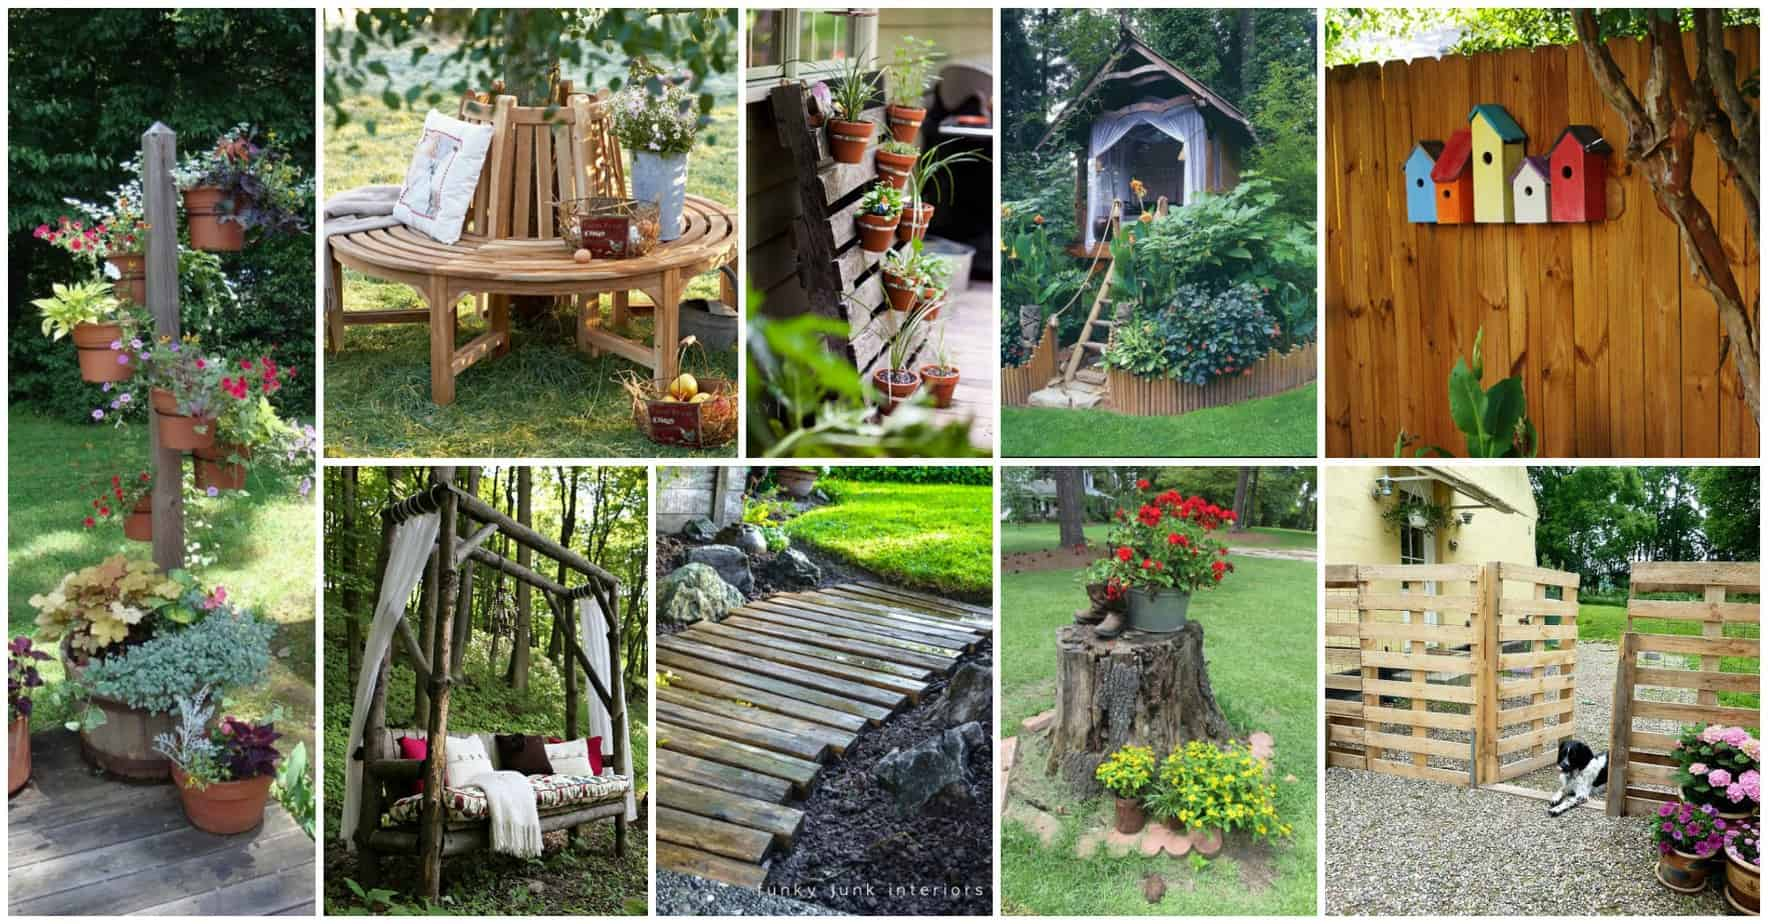 bring some diy wooden whimsy into your yard diy cozy home